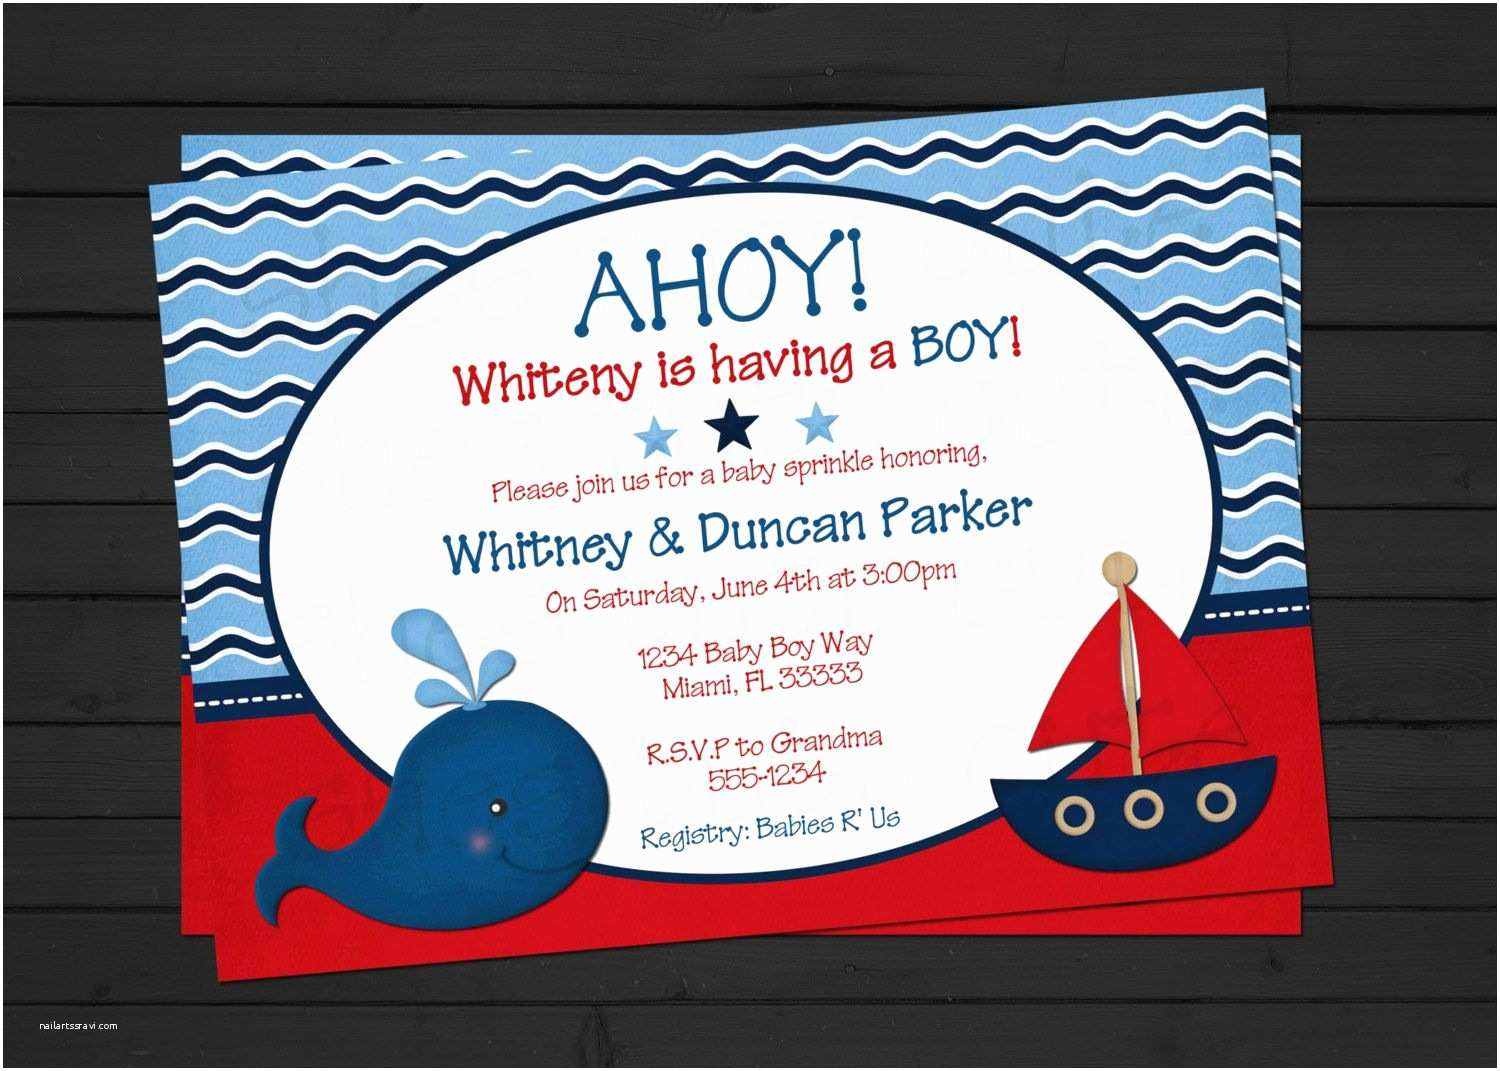 Nautical themed Baby Shower Invitations Ahoy It S A Boy Nautical Baby Shower Invitation by